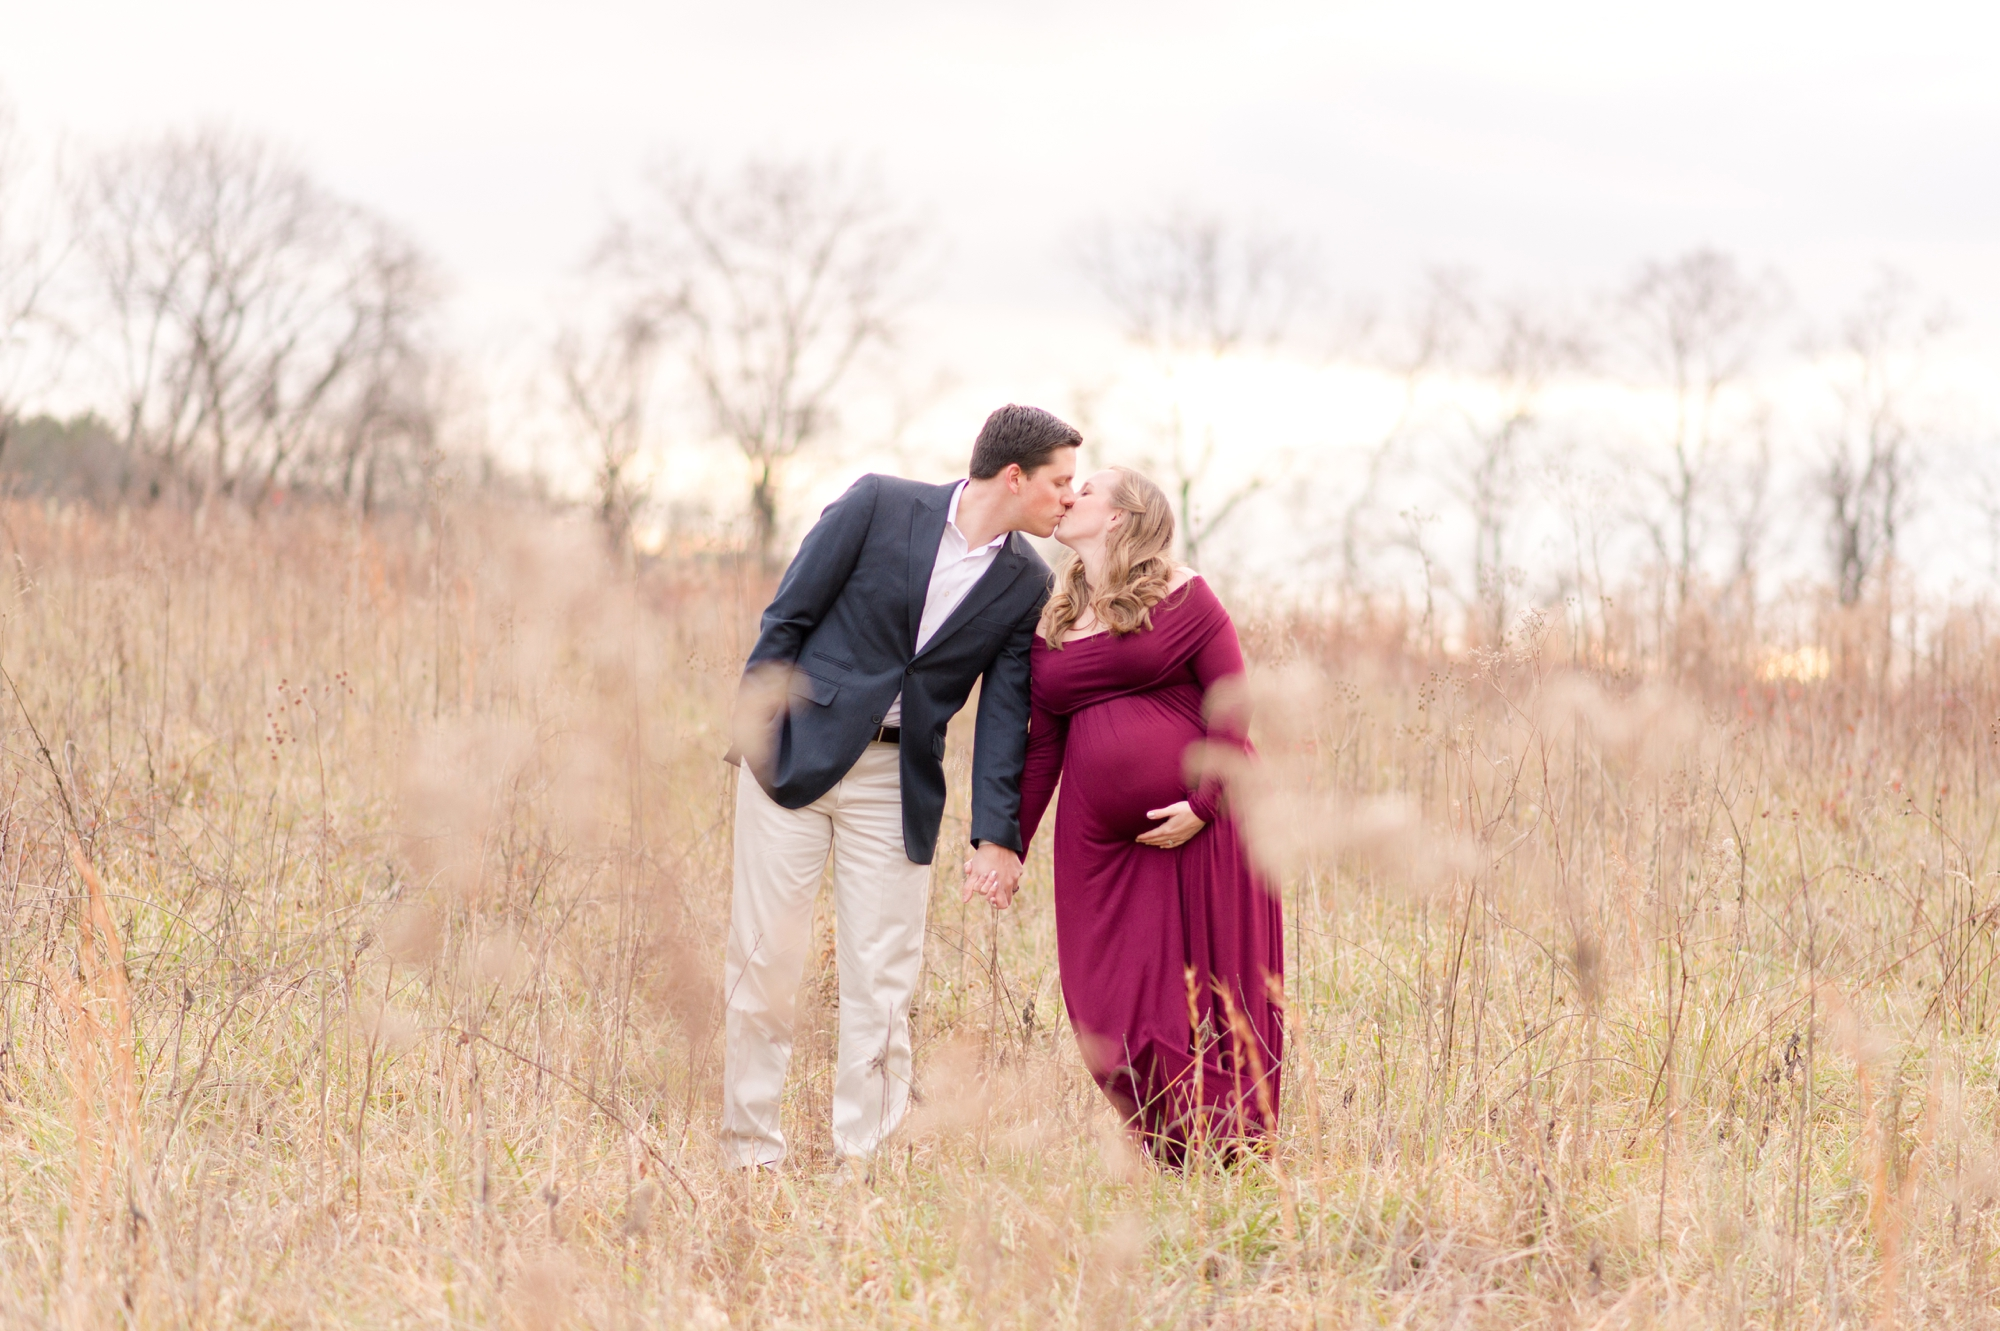 AG and Kevin Maternity-284_anna grace photography baltimore maryland maternity photographer cromwell valley park photo.jpg